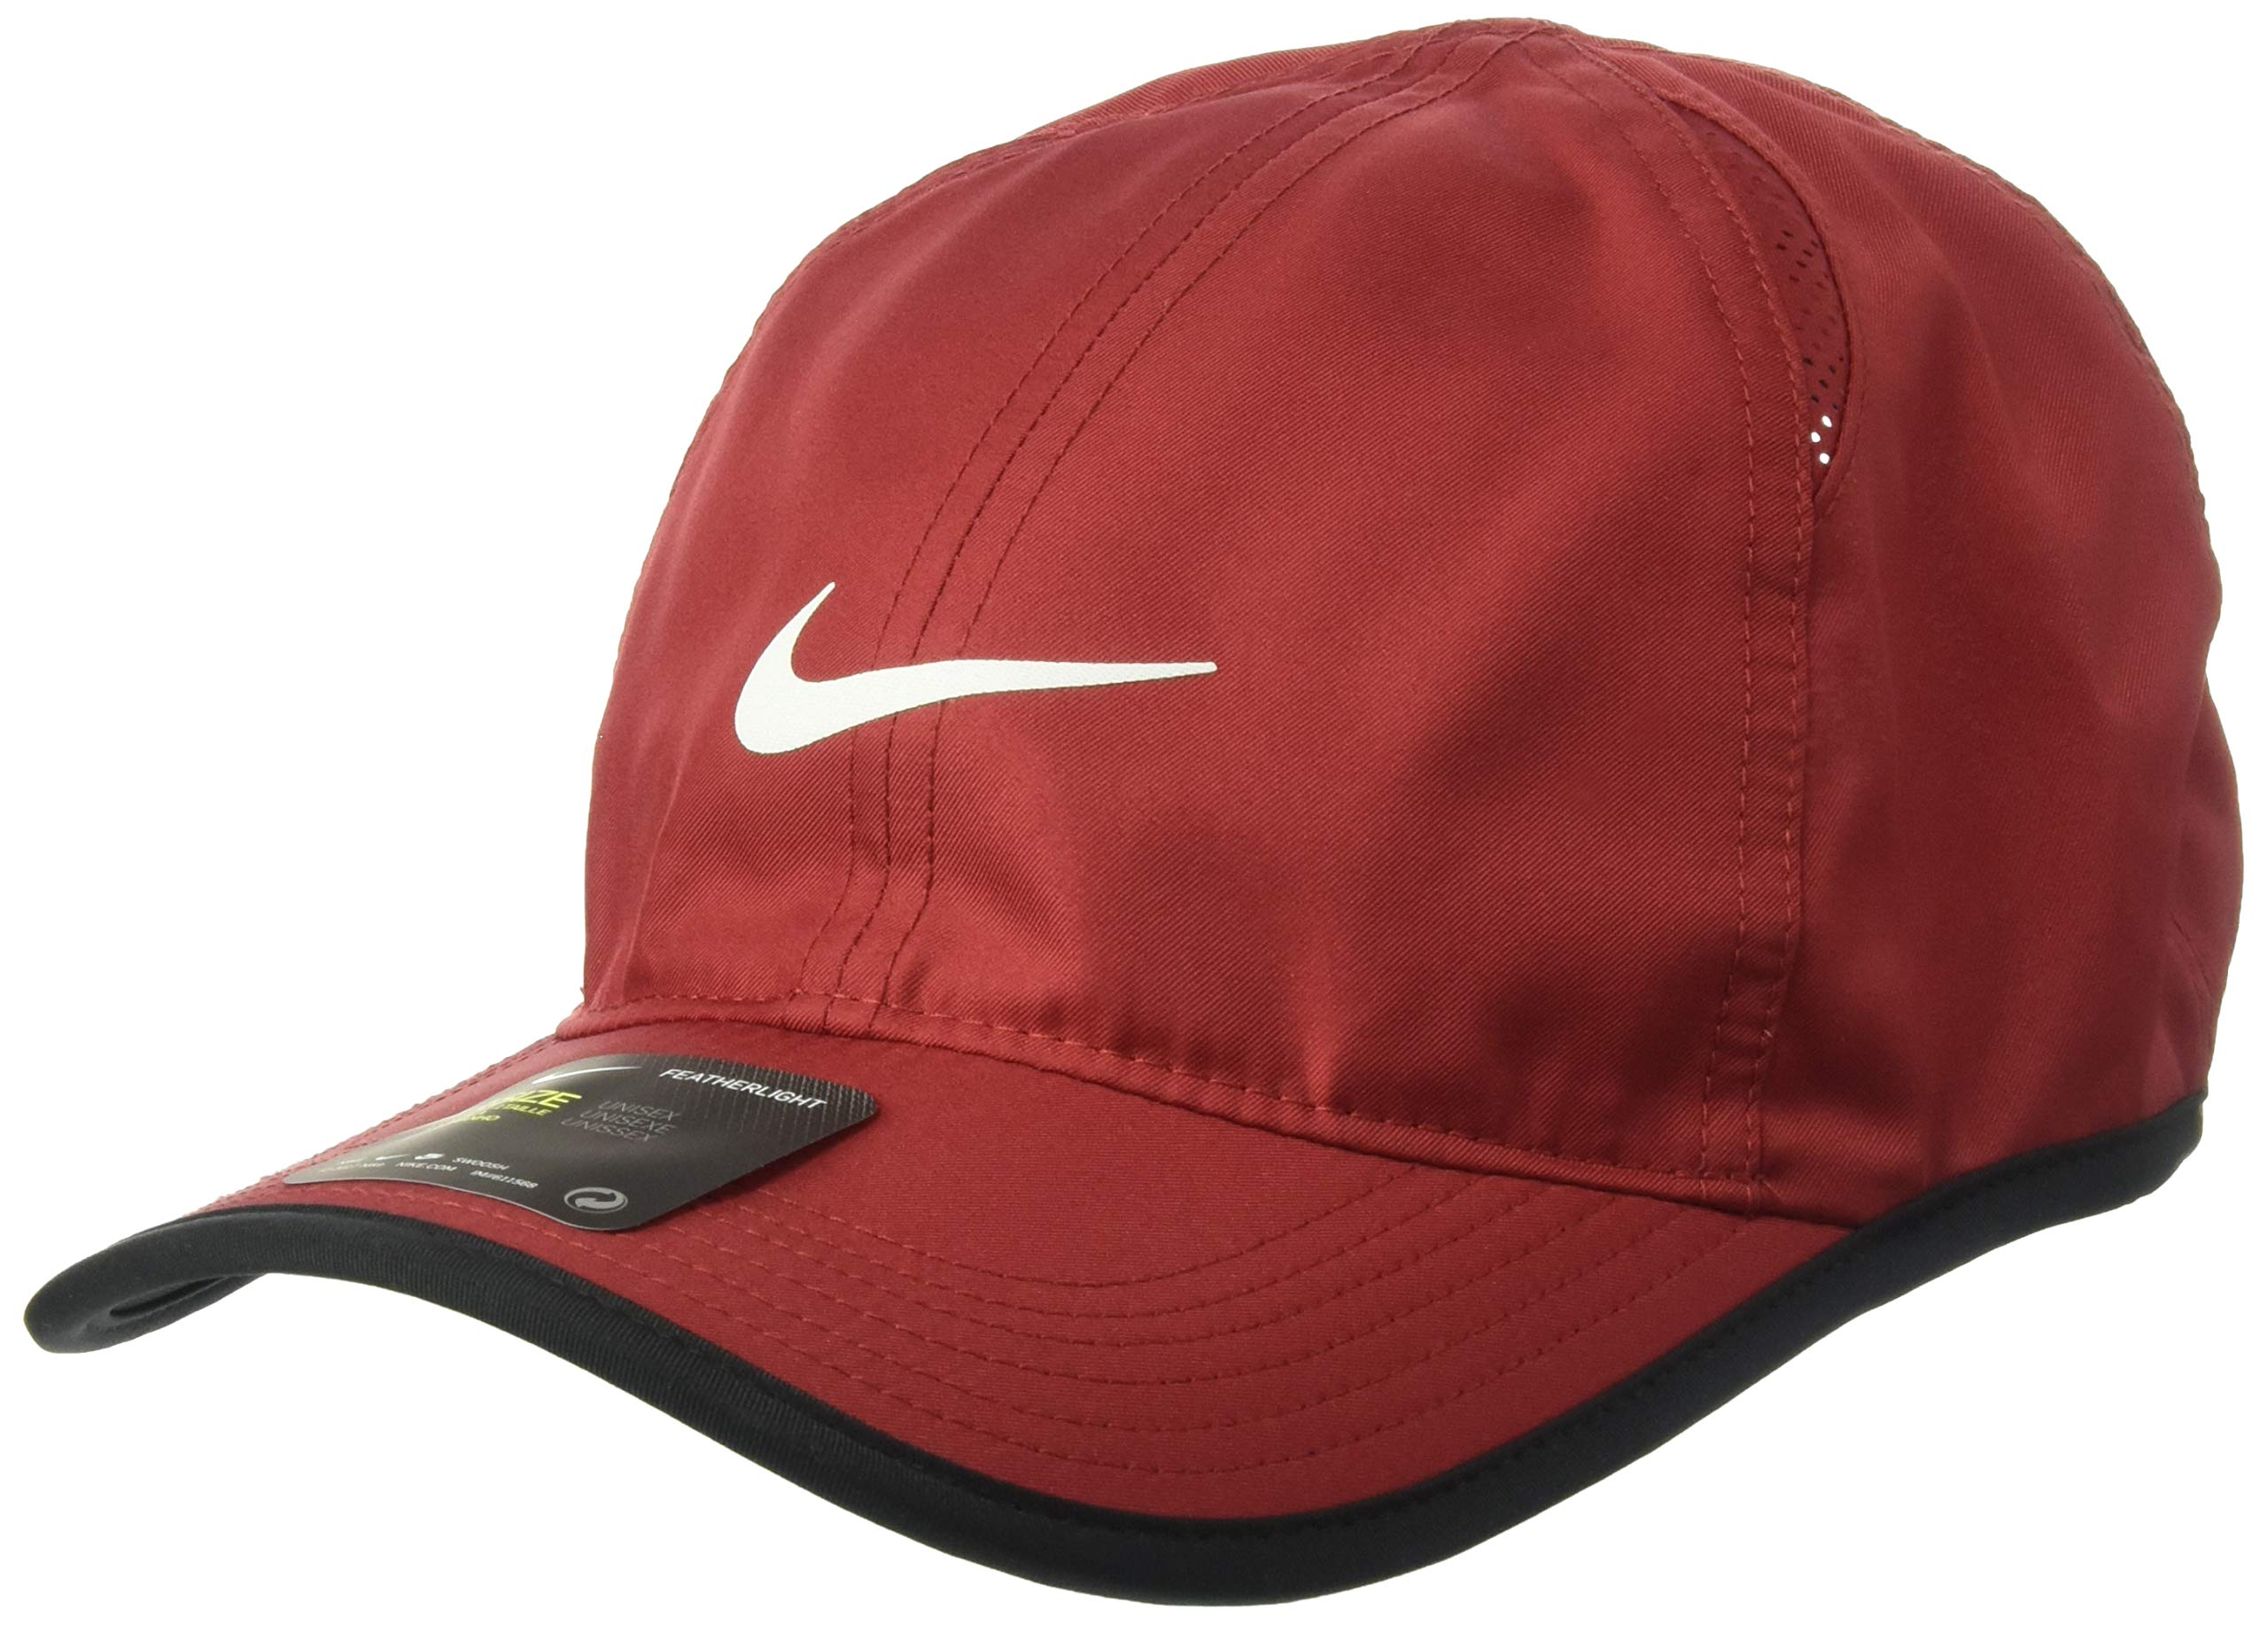 Nike Youth Aerobill Featherlight Cap, Team Crimson/Black/White, Misc